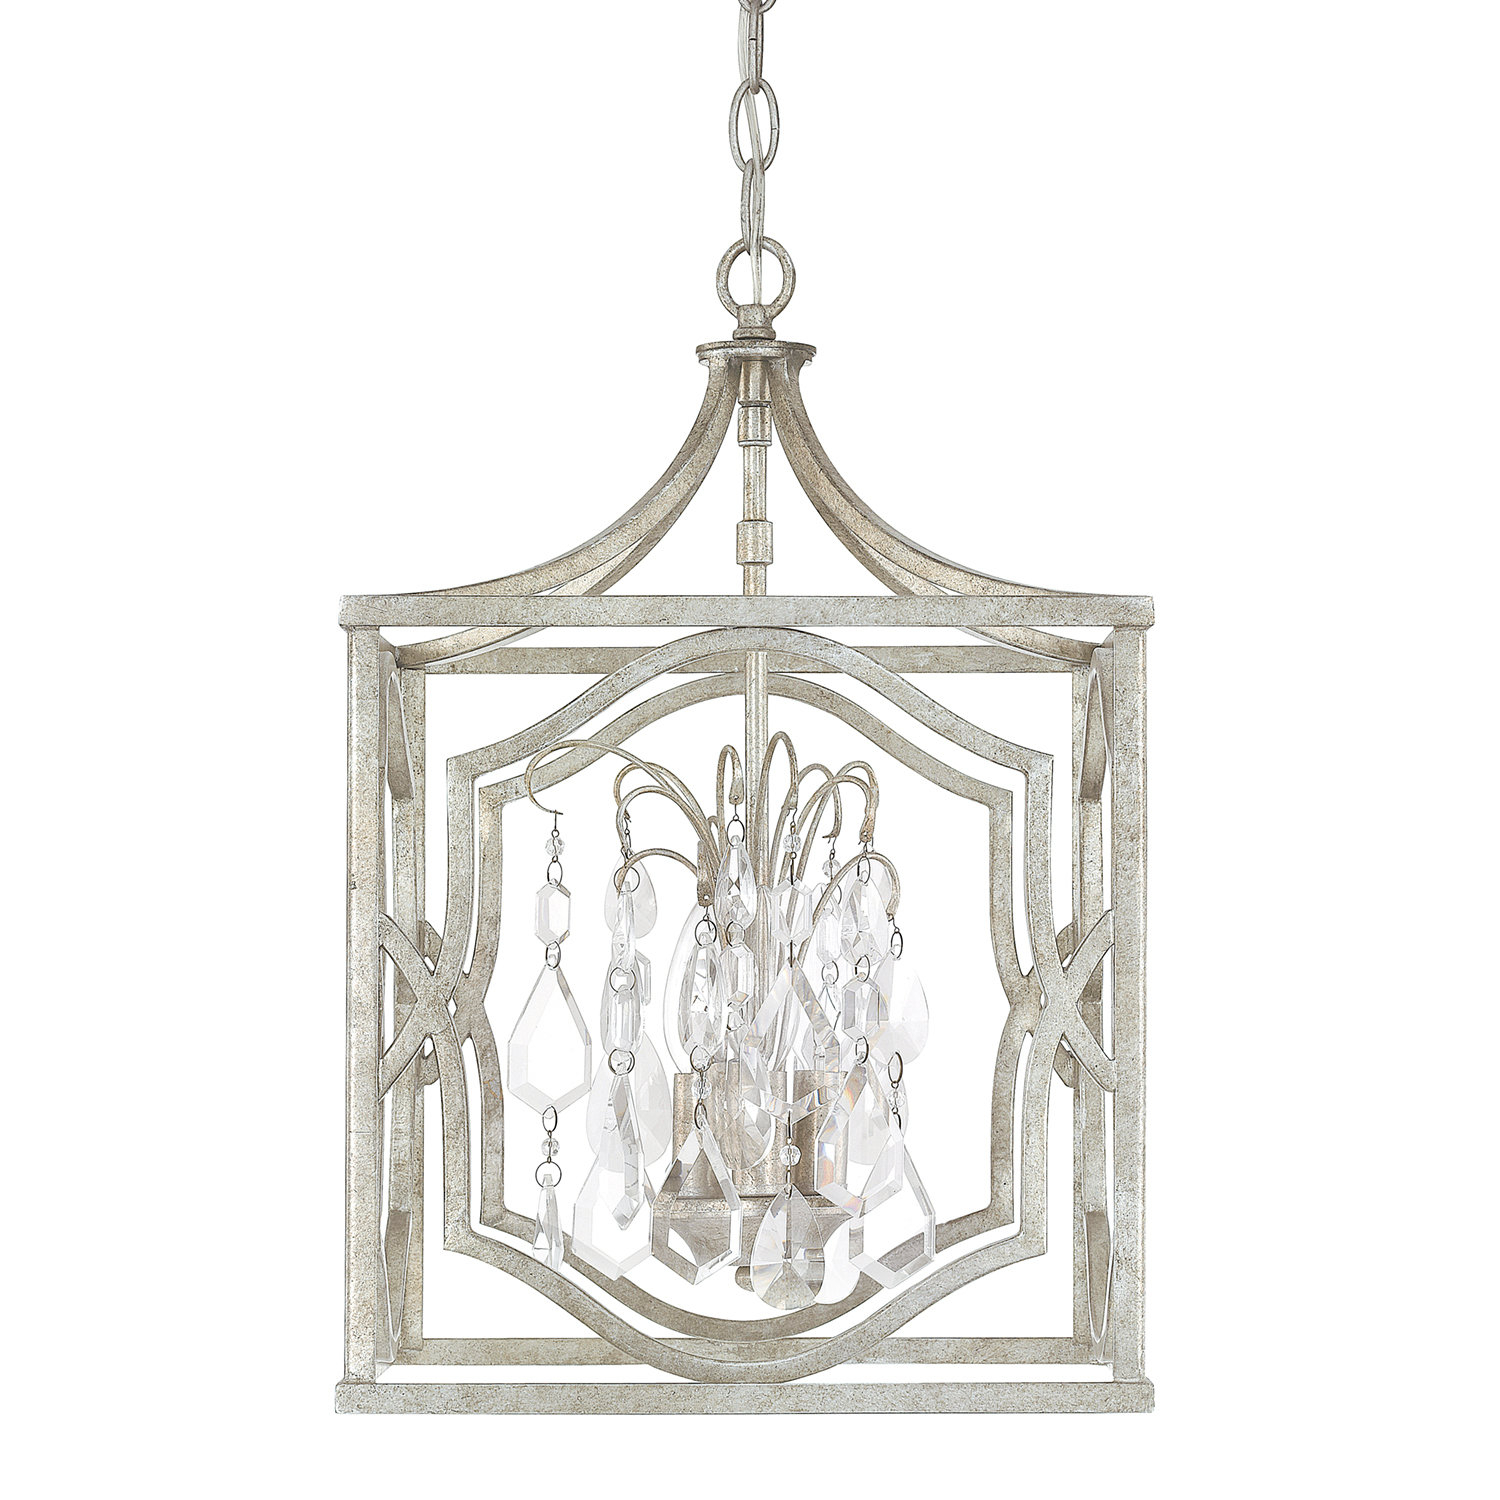 Destrey 3 Light Lantern Pendant & Reviews | Joss & Main In Destrey 3 Light Lantern Square/rectangle Pendants (Gallery 8 of 30)